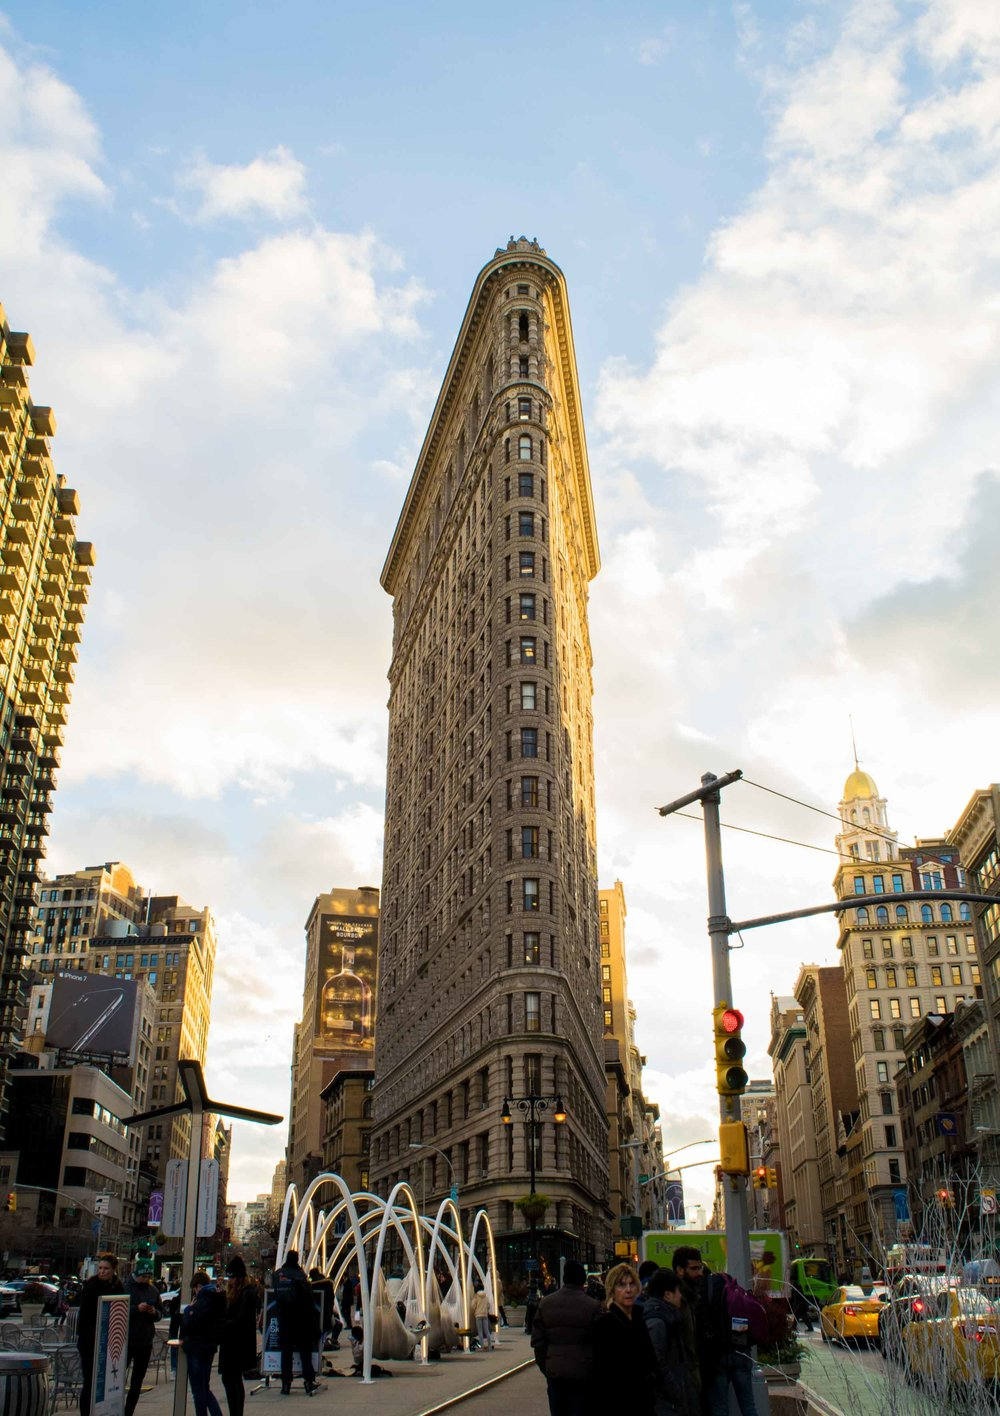 Flat Iron Building in New York City.